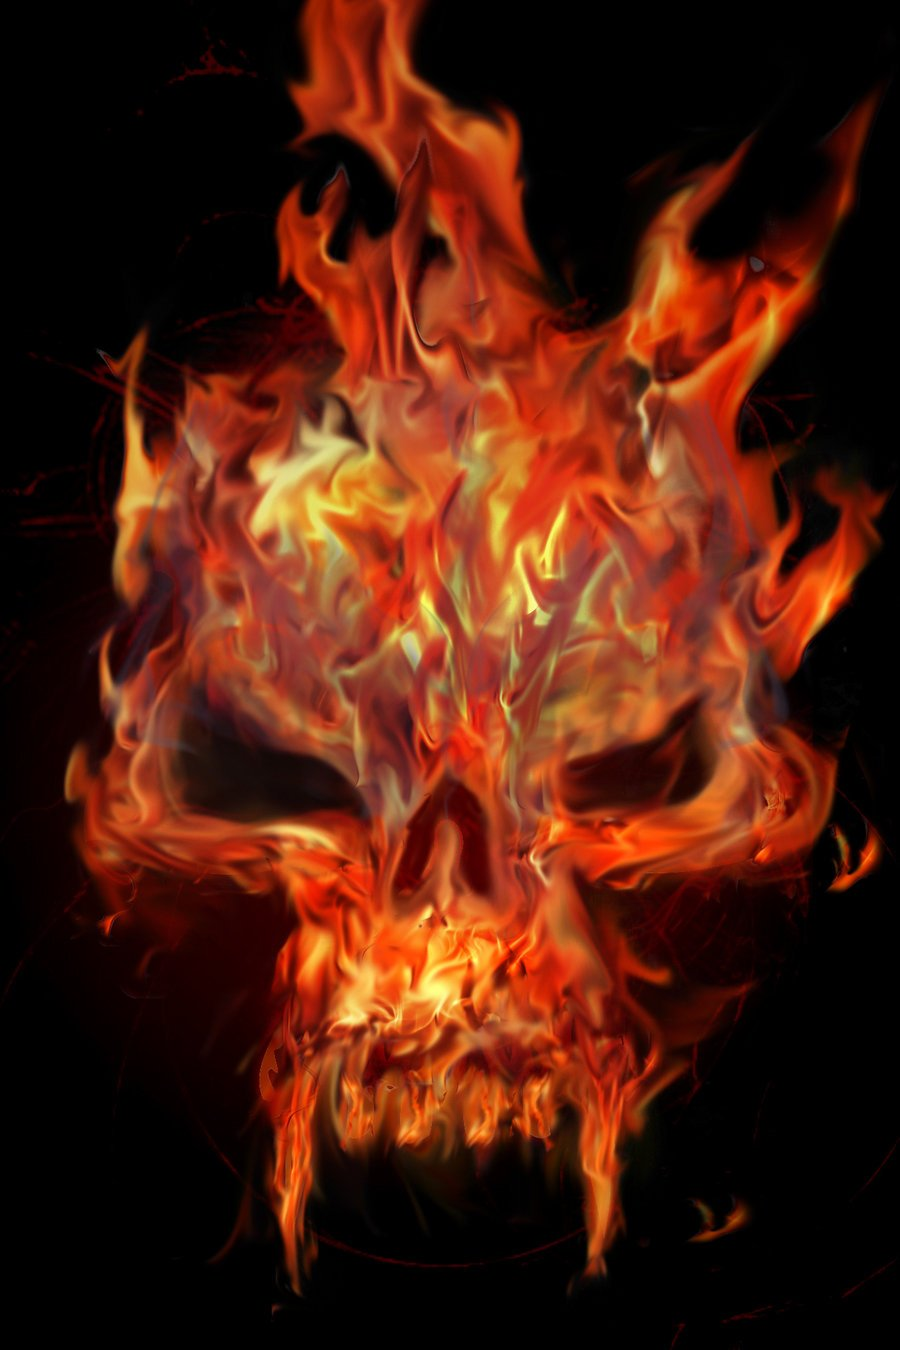 Flaming Skull by Chemikal GraphiX 900x1350